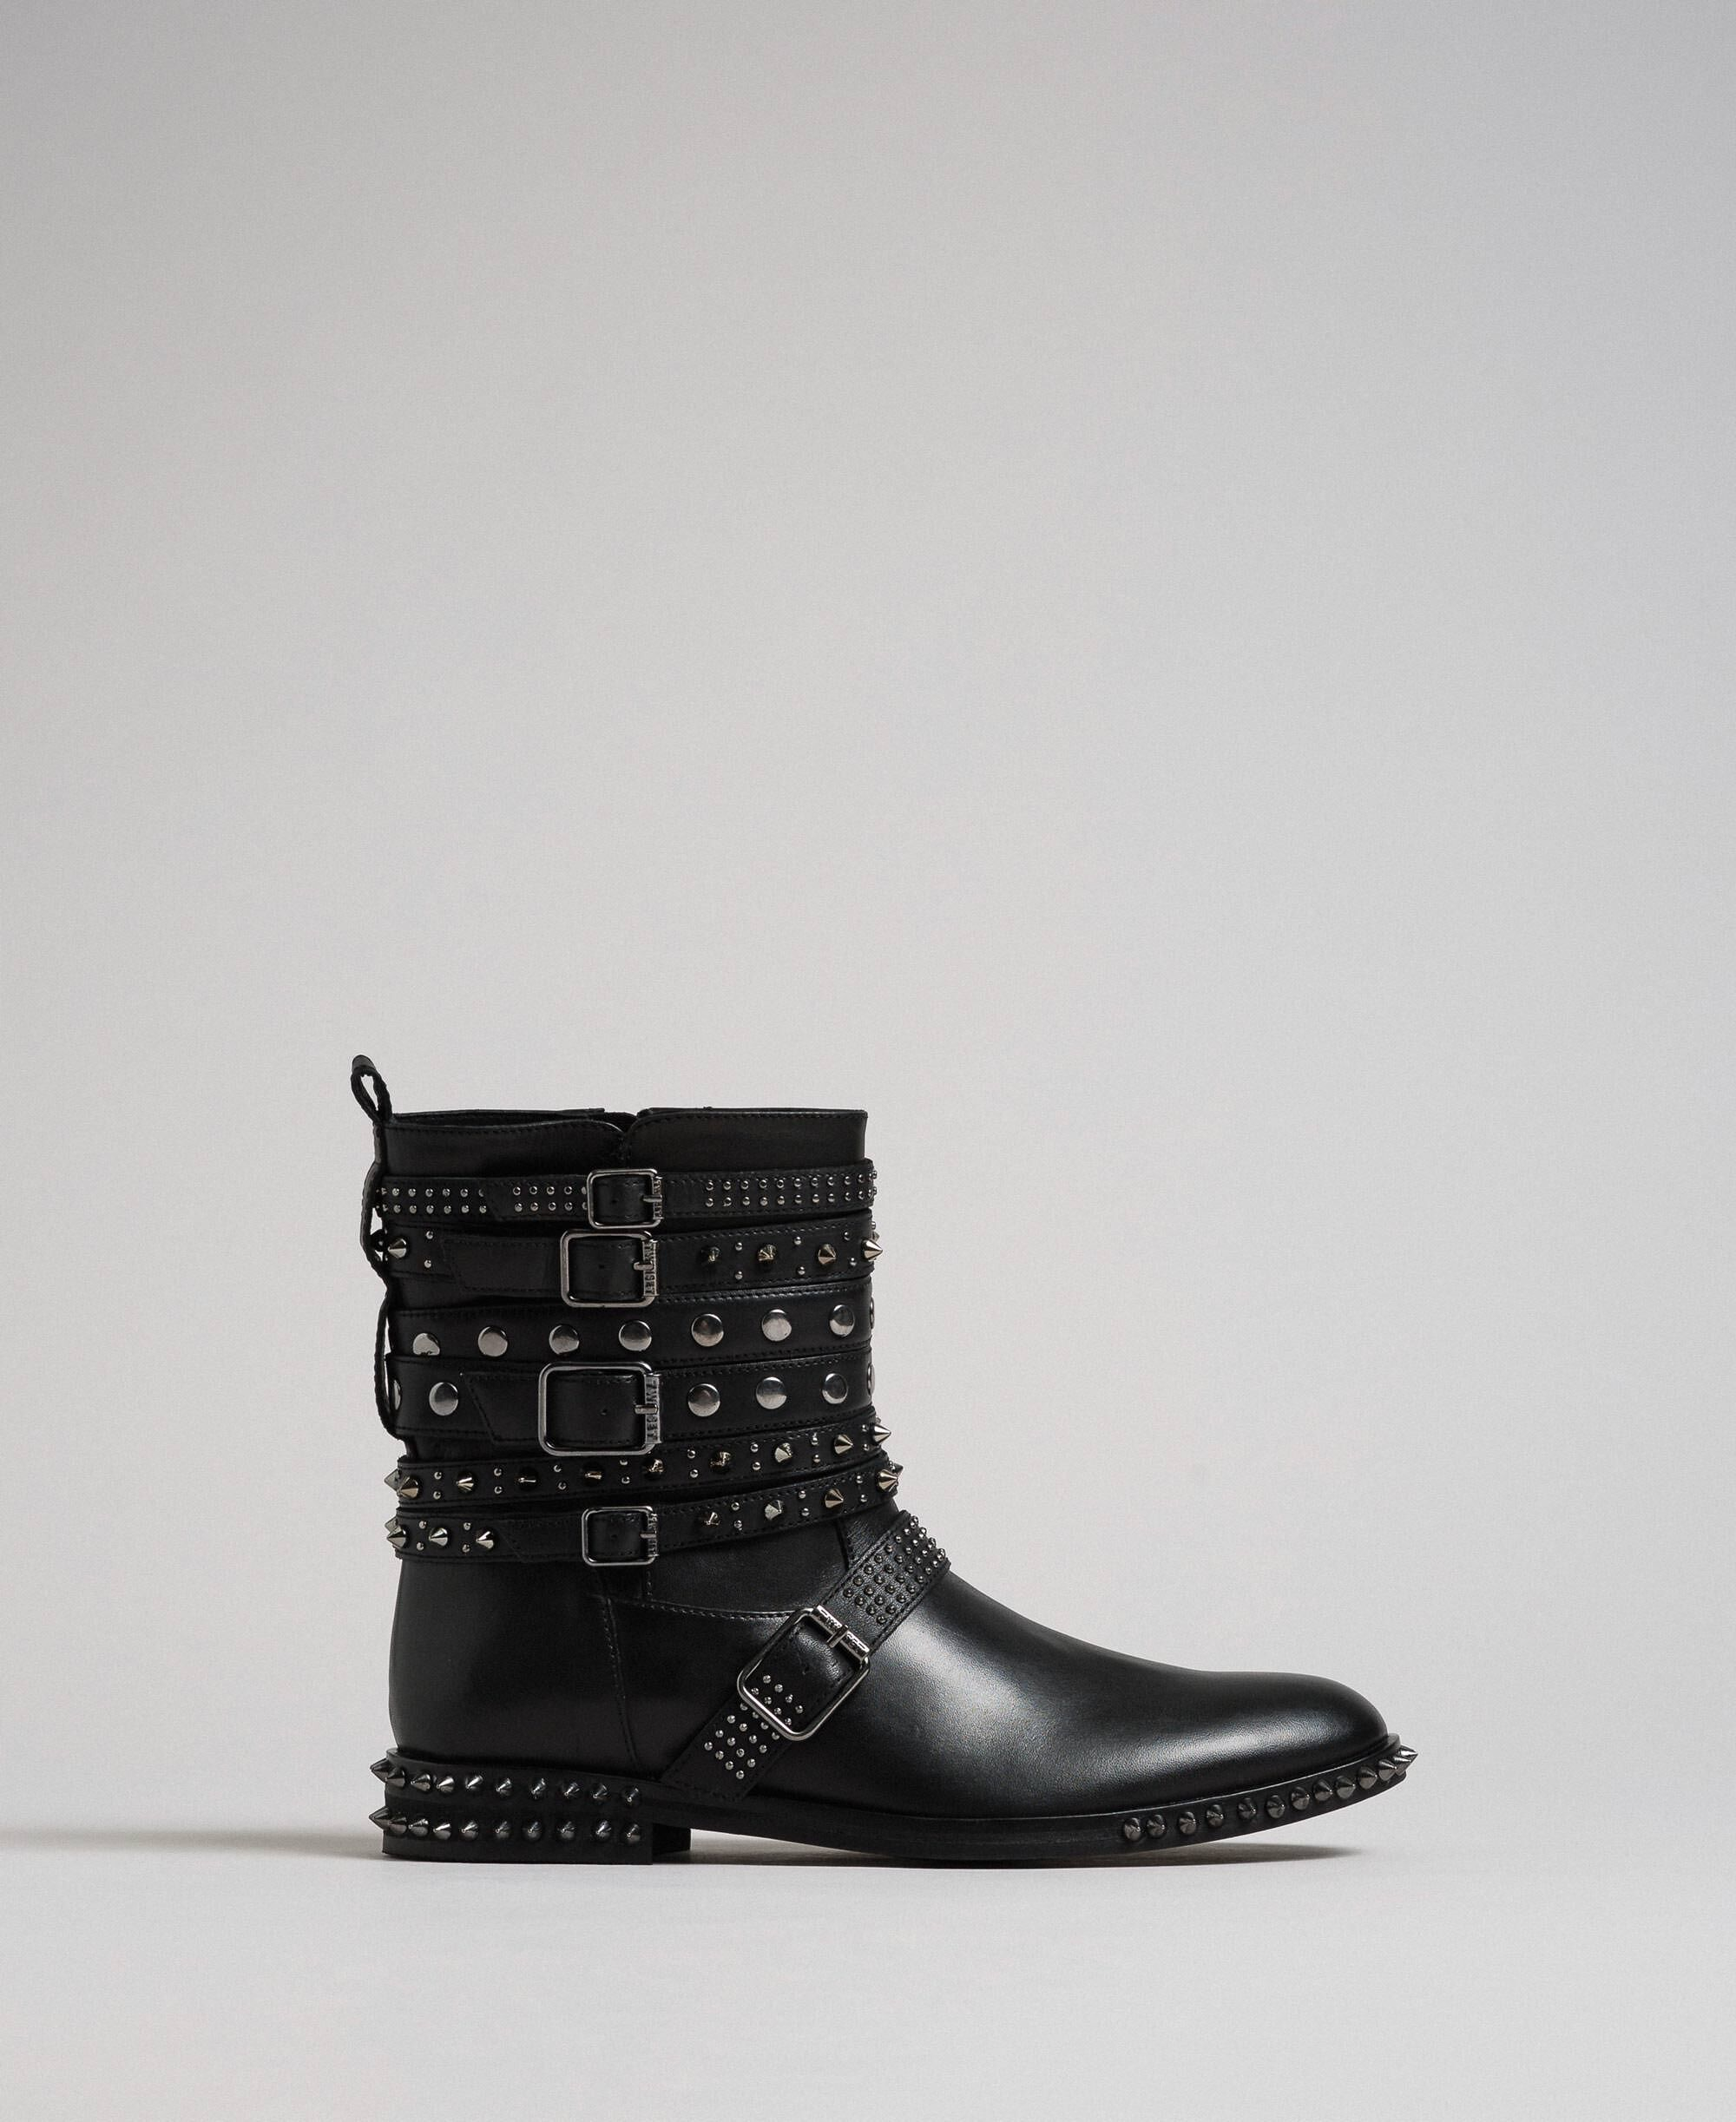 Leather biker boots with straps and